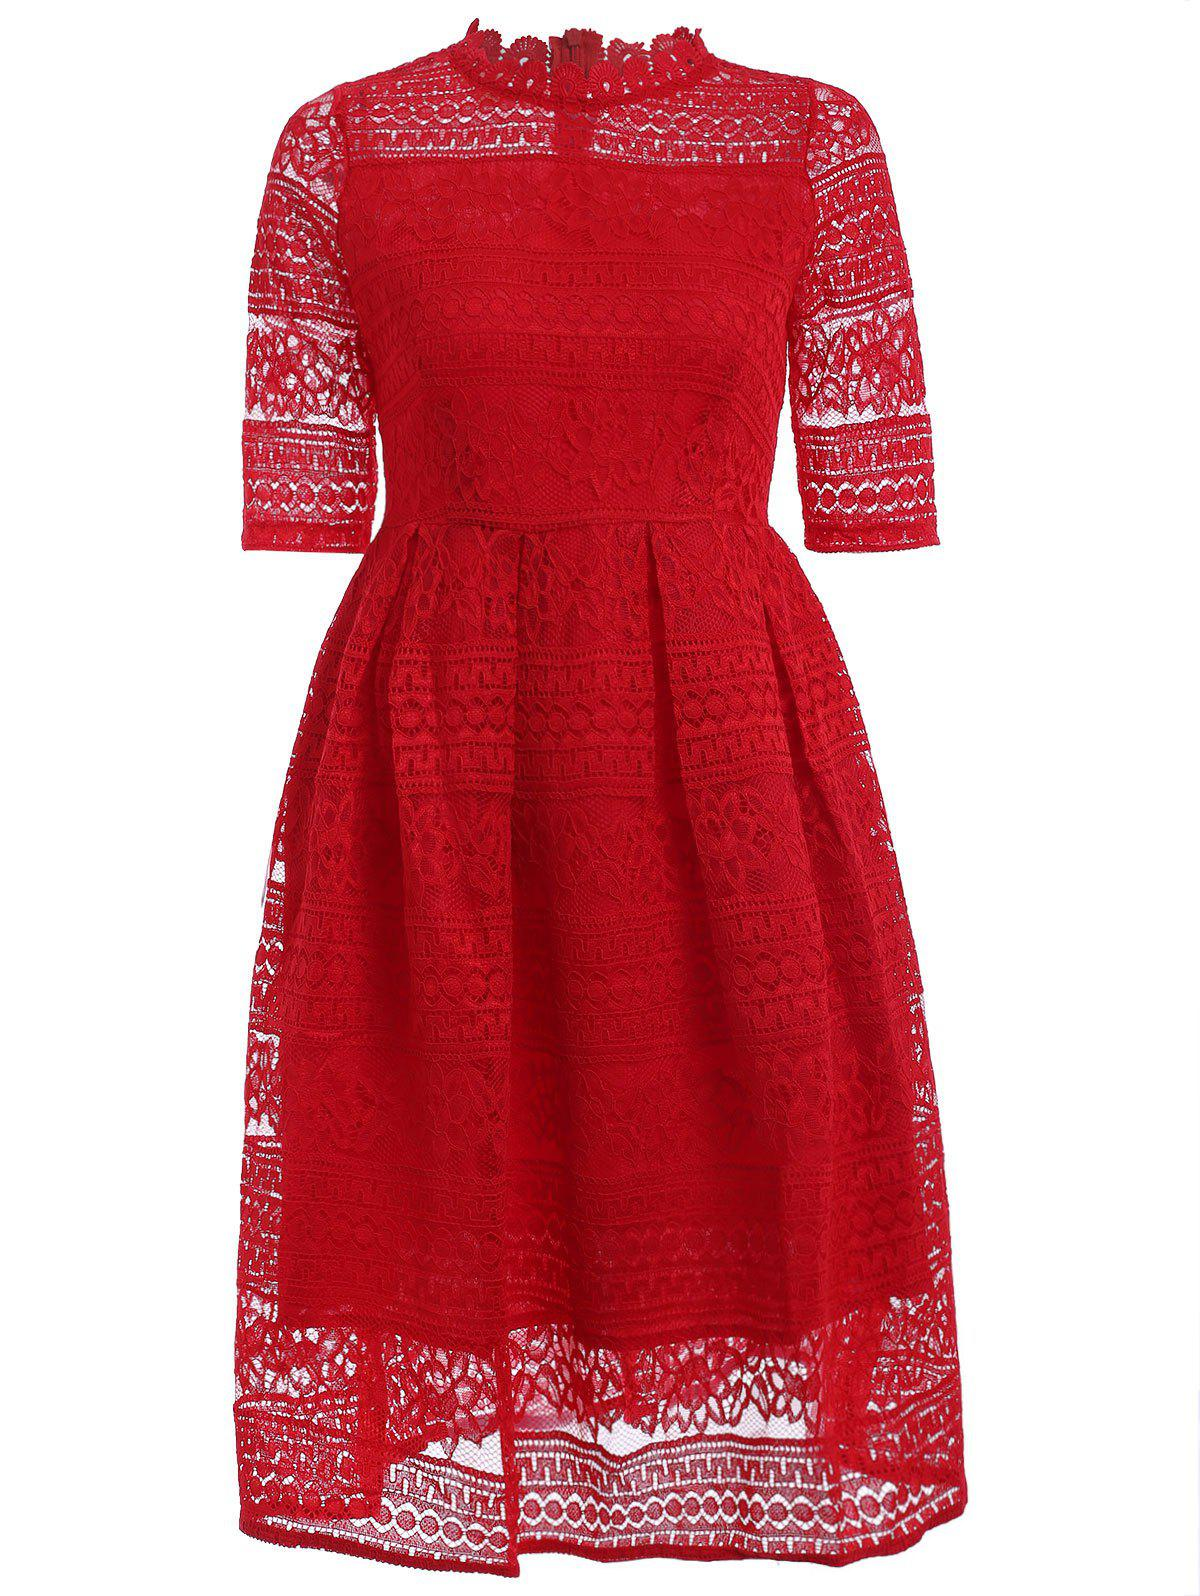 Stunning Stand Collar High Waist Lace Lady's Dress - RED M